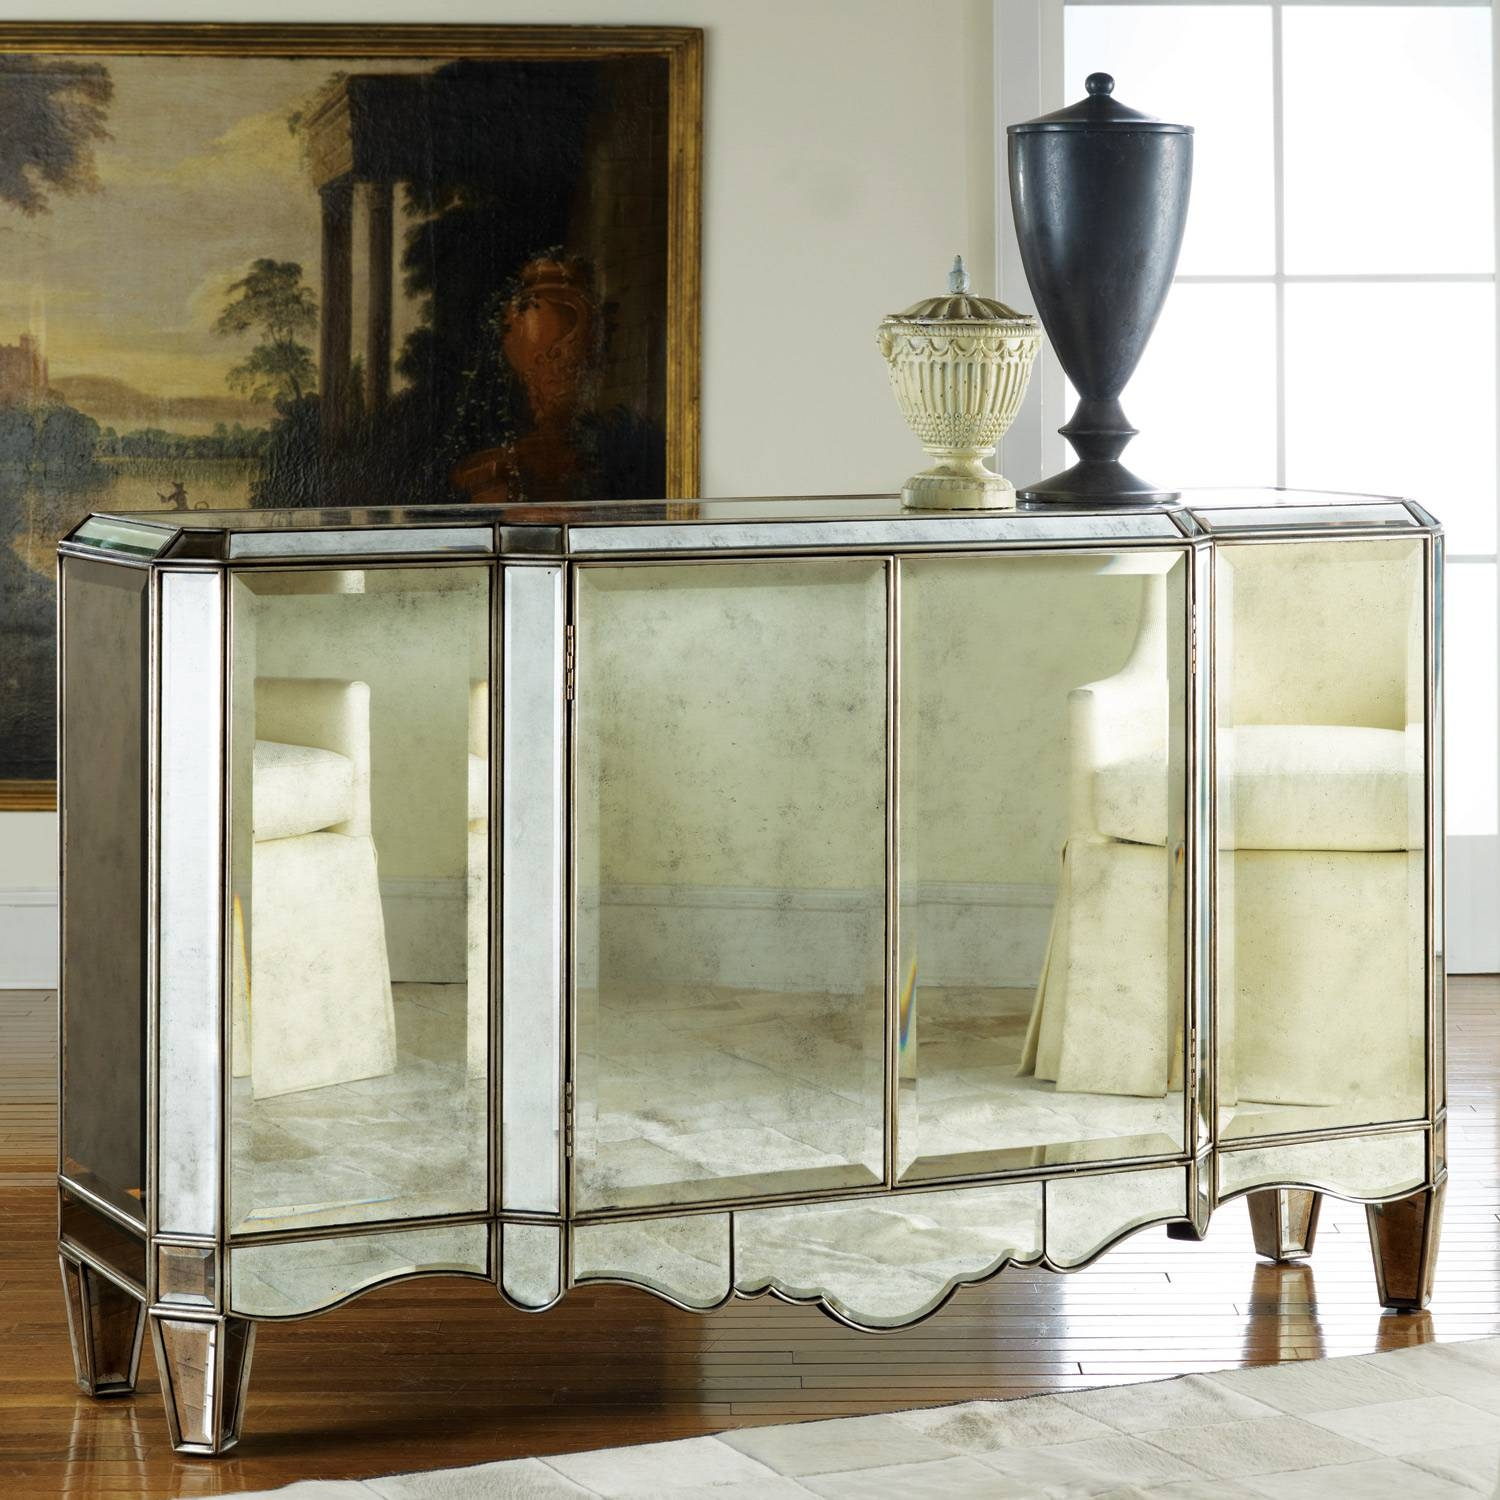 Modern History Home Mirrored Sideboard Intended For Mirrored Sideboards (#12 of 20)